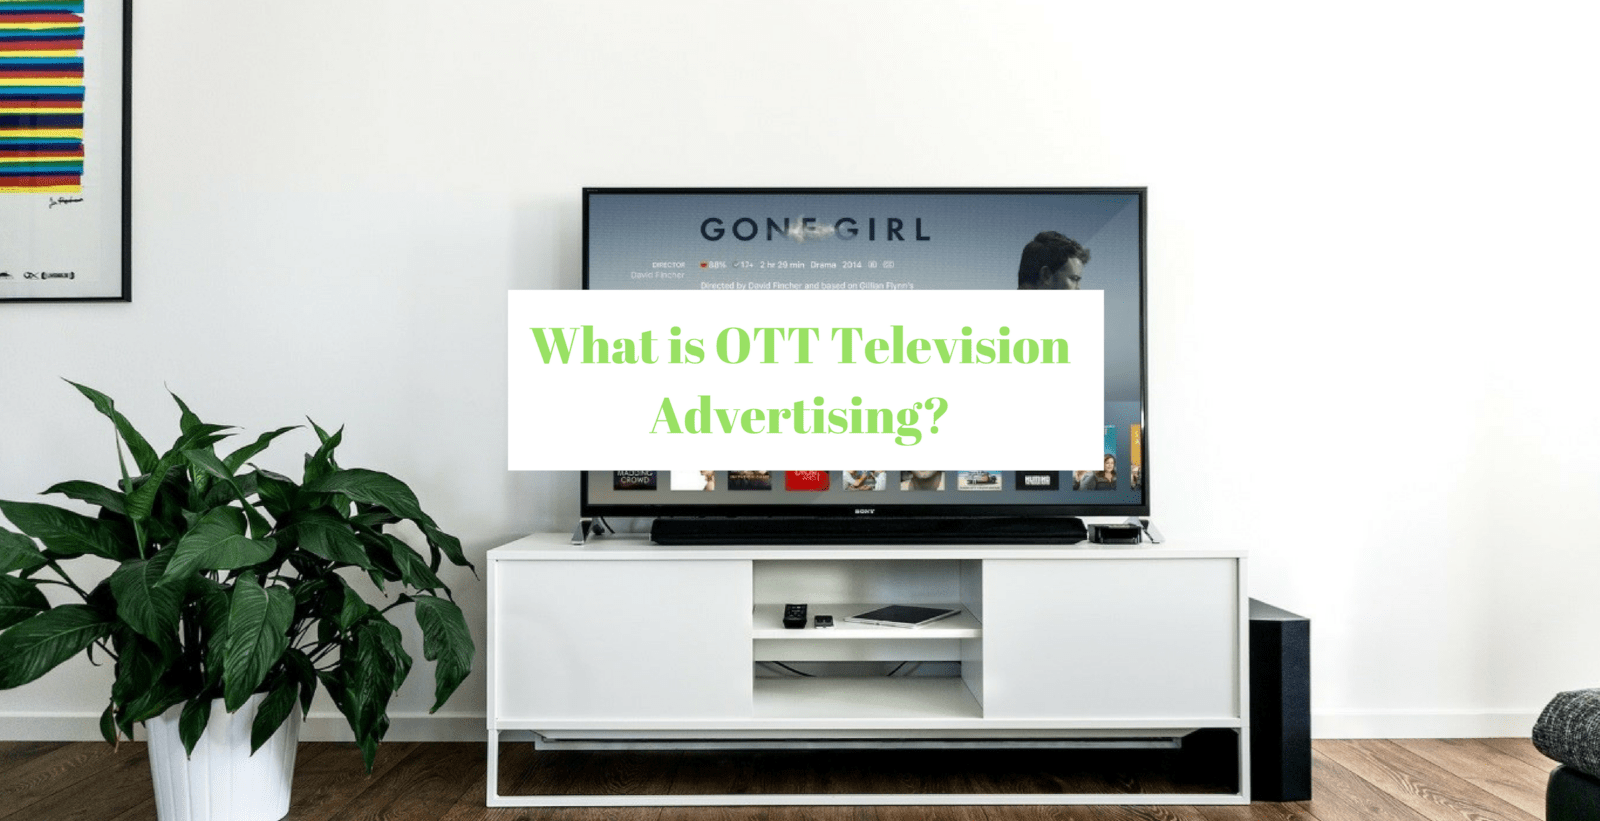 How can I advertise on OTT in pittsburgh and nationwide?